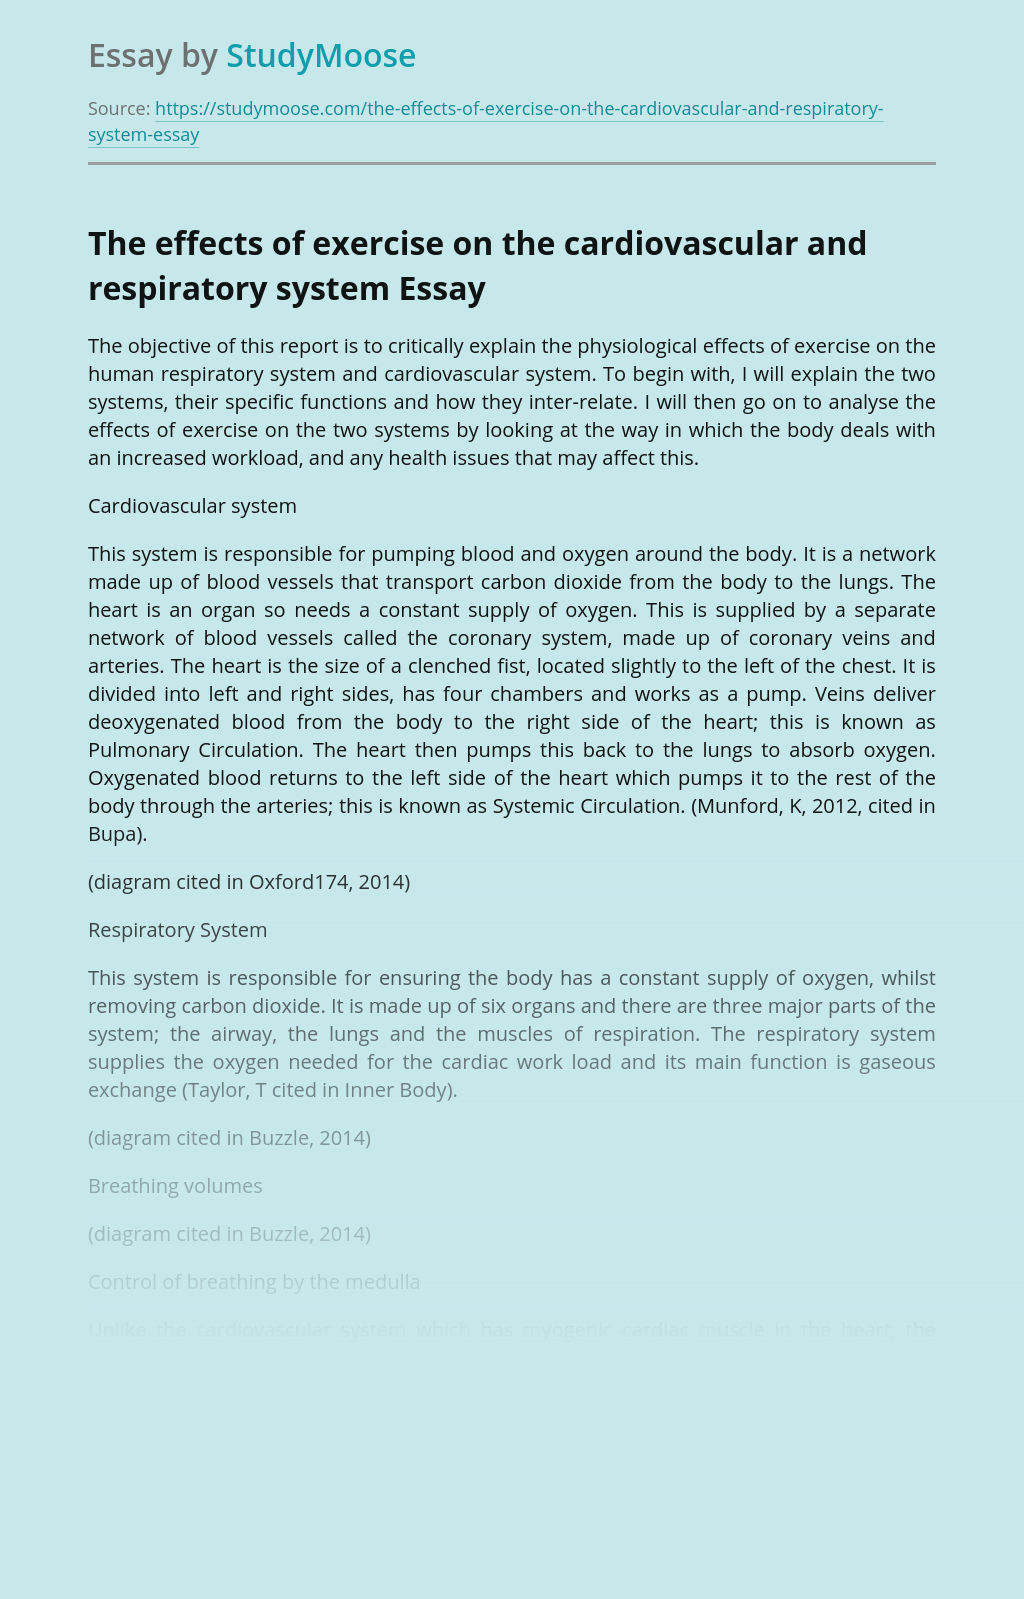 The effects of exercise on the cardiovascular and respiratory system